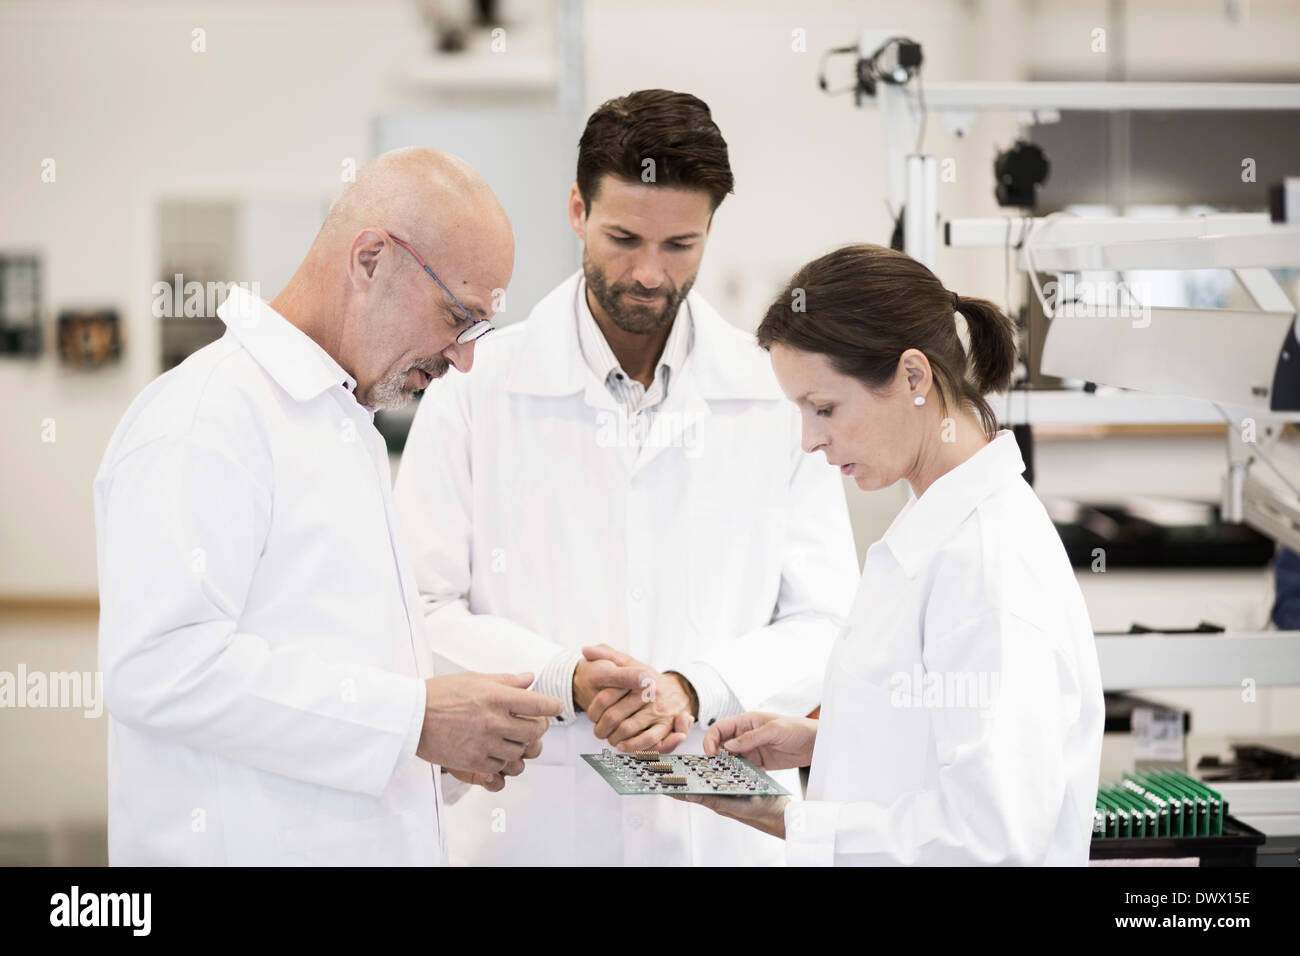 Team of technicians examining circuit board in factory - Stock Image